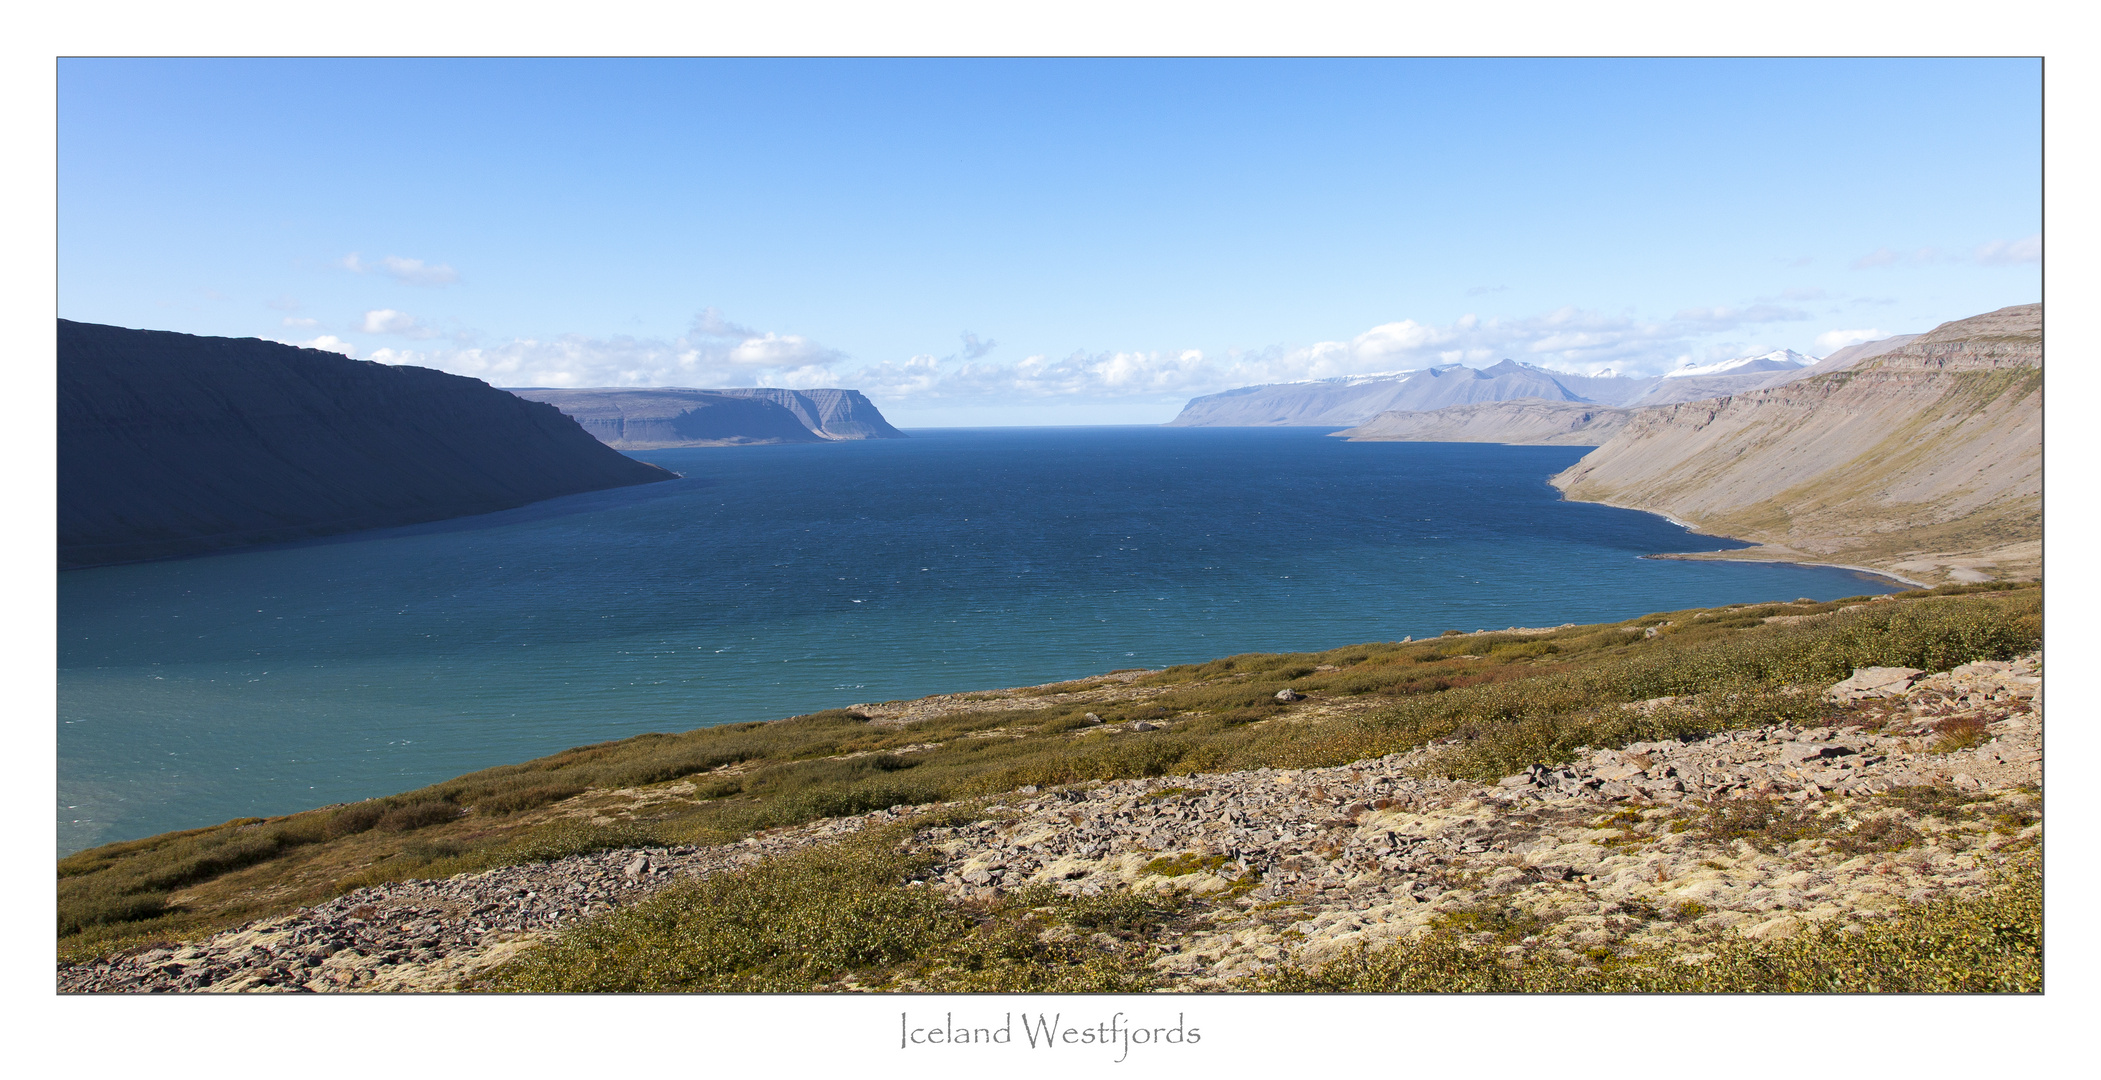 Island - The Blue Sea of Westfjords